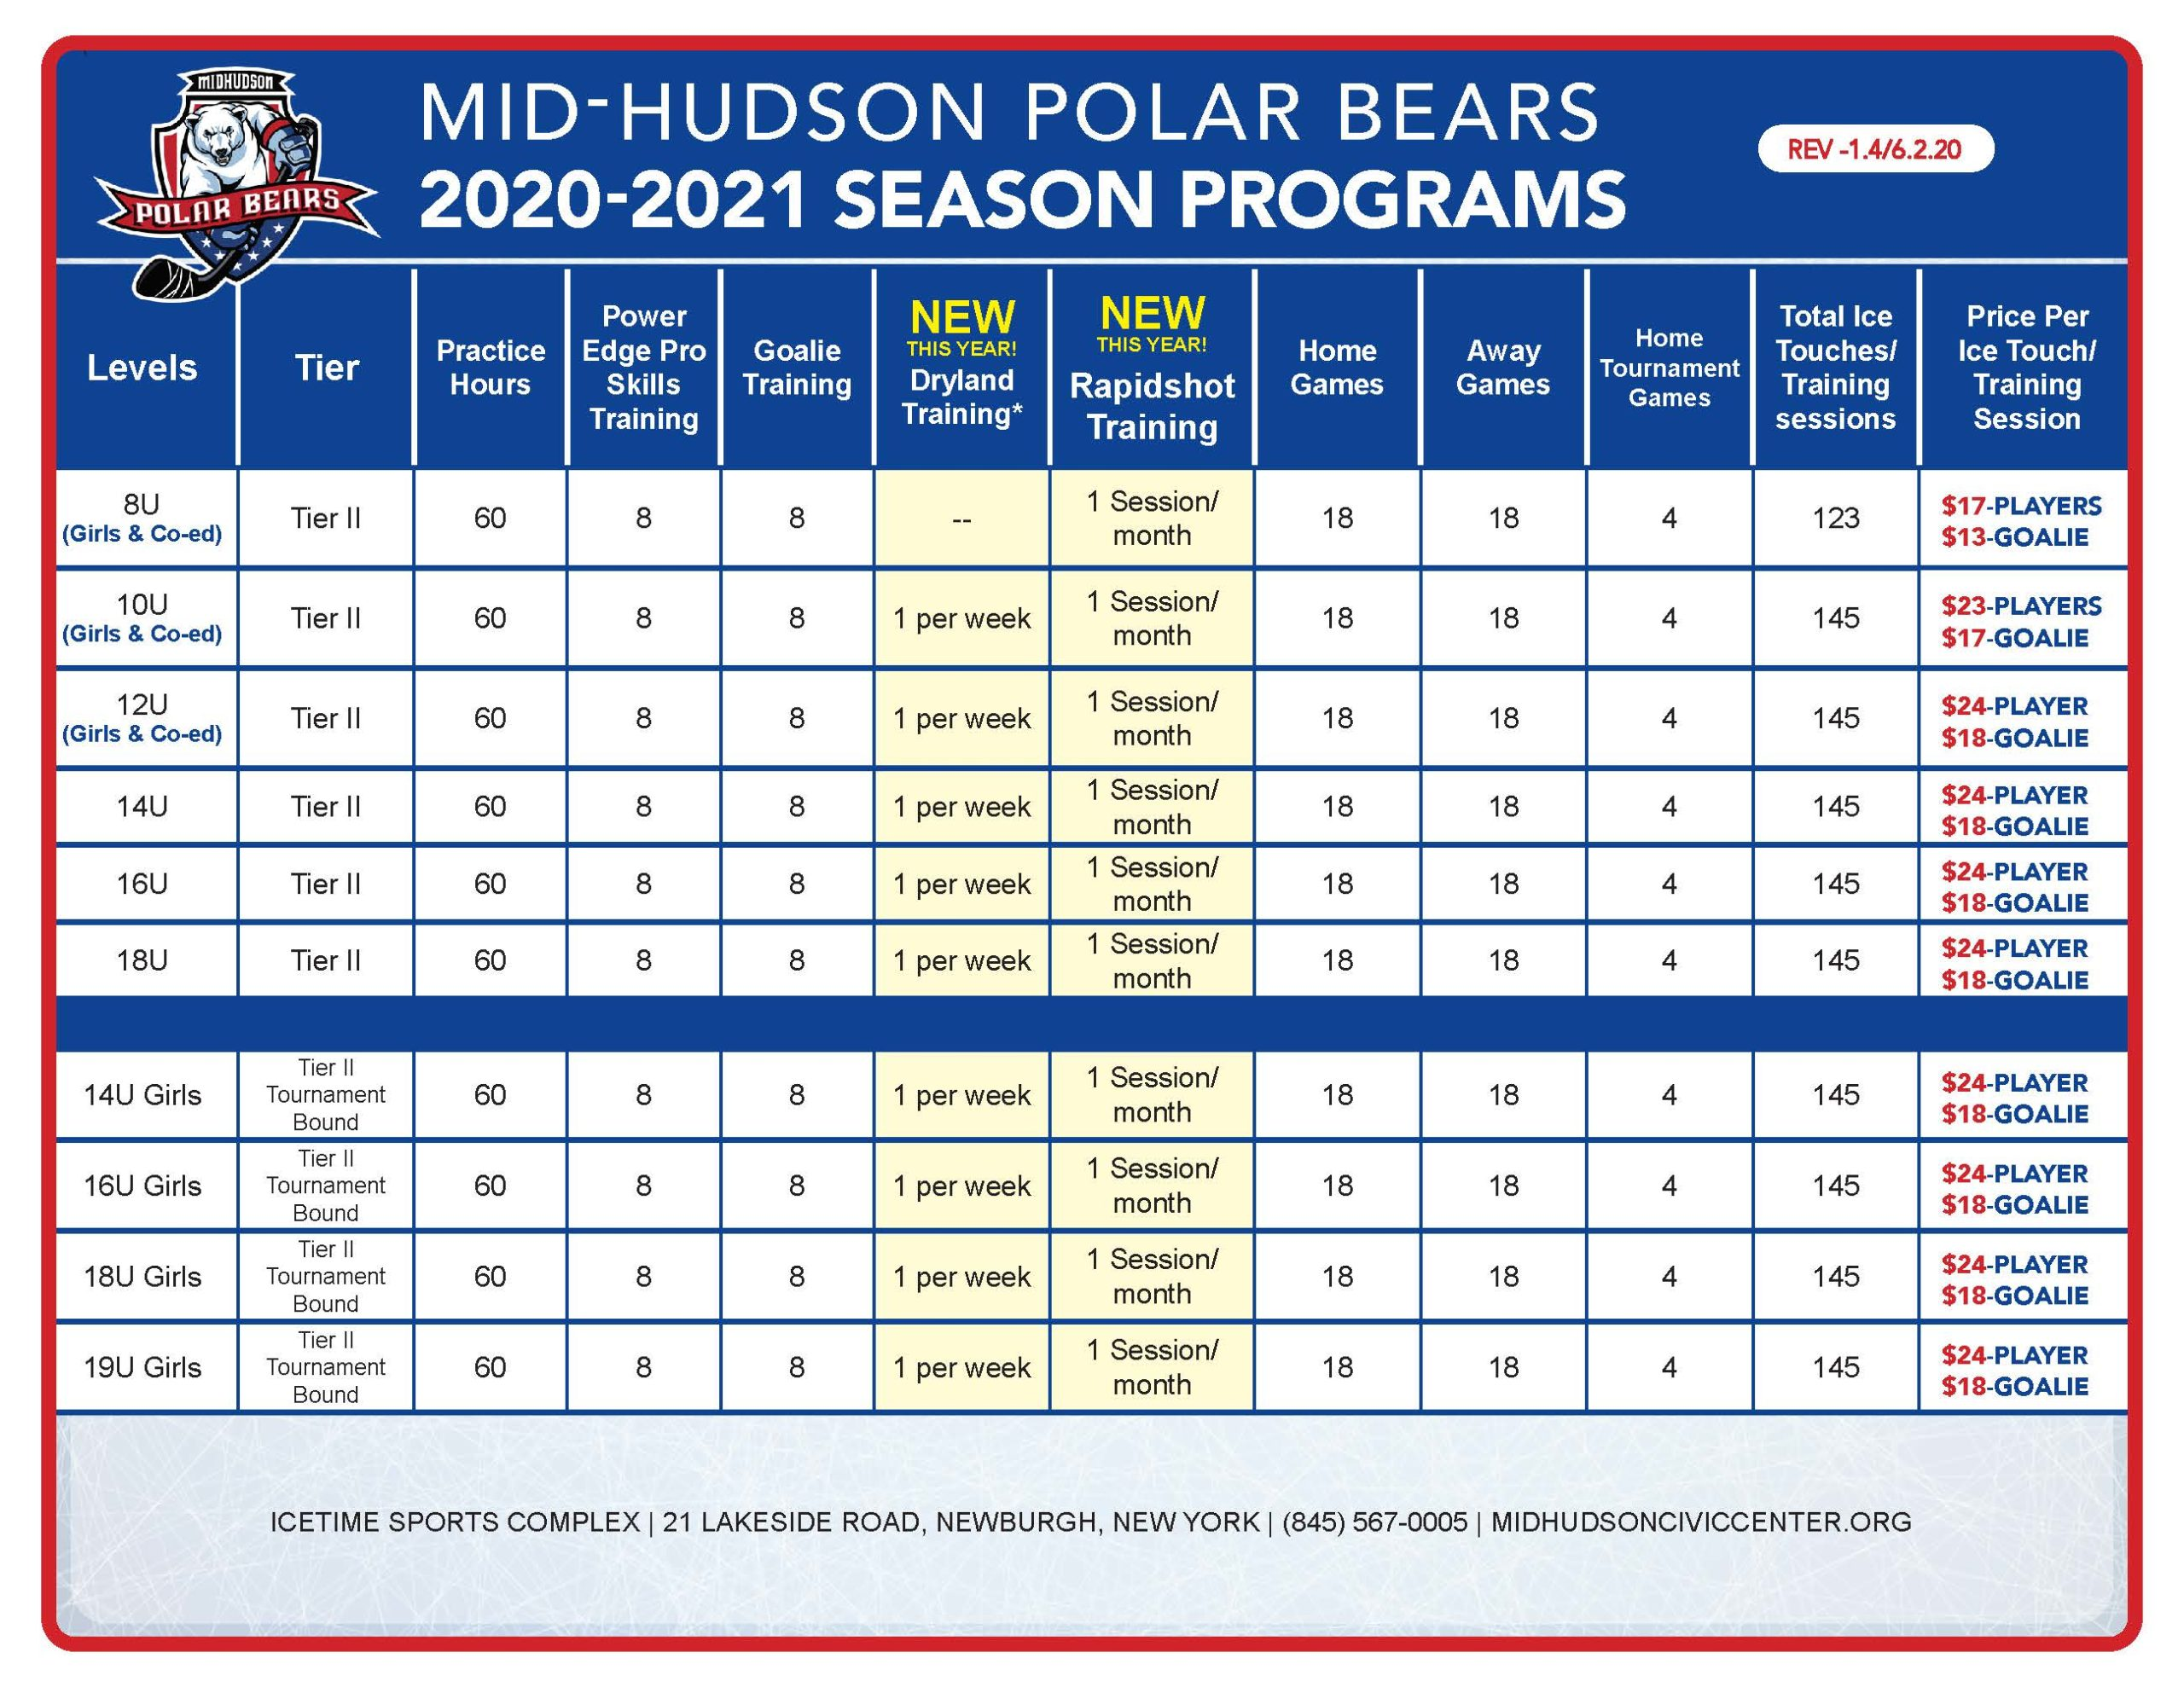 Mid-Hudson Polar Bears Registration Information